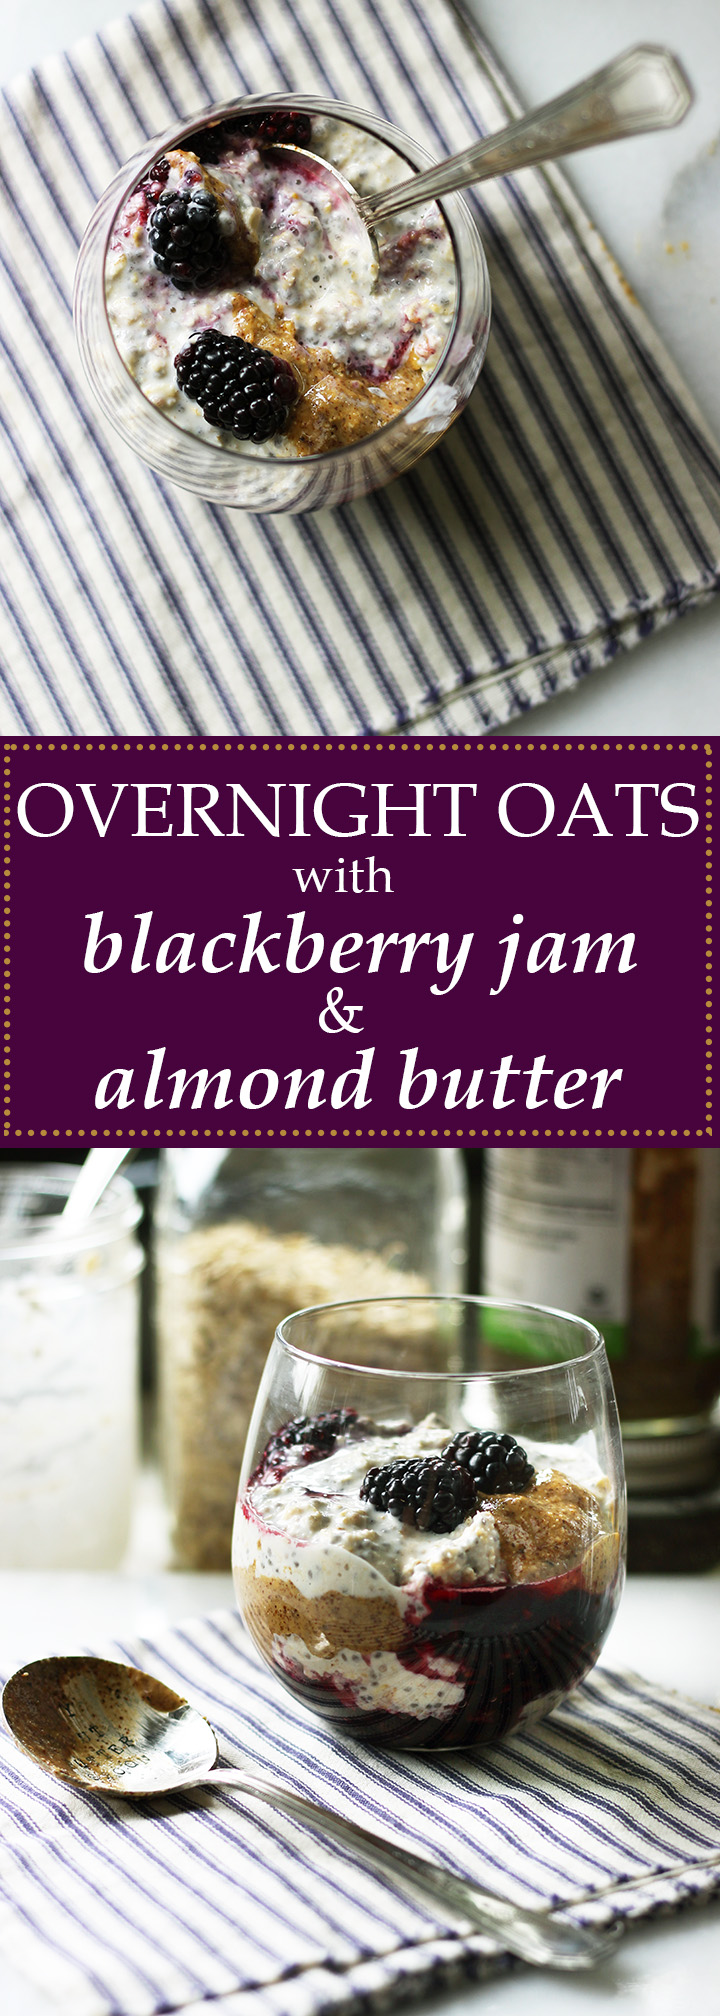 Overnight Oats with Blackberry Raw Jam & Almond Butter | www.thetableofcontents.co